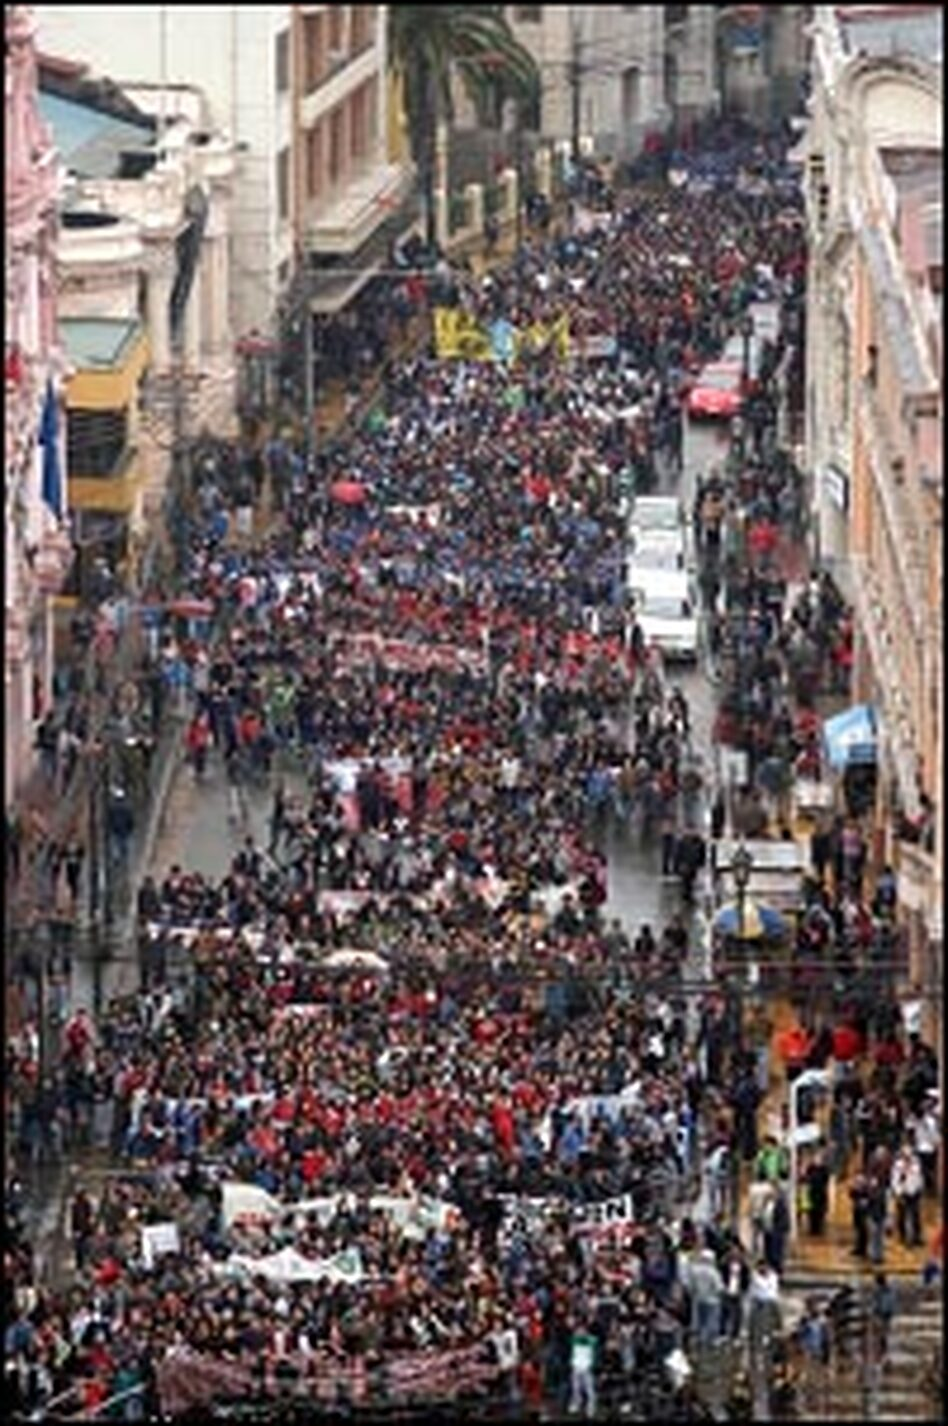 Thousands of Chilean students march during a massive protest rally in the streets of Valparaiso on June 5, 2006 -- part of a nationwide strike to demand education reforms.